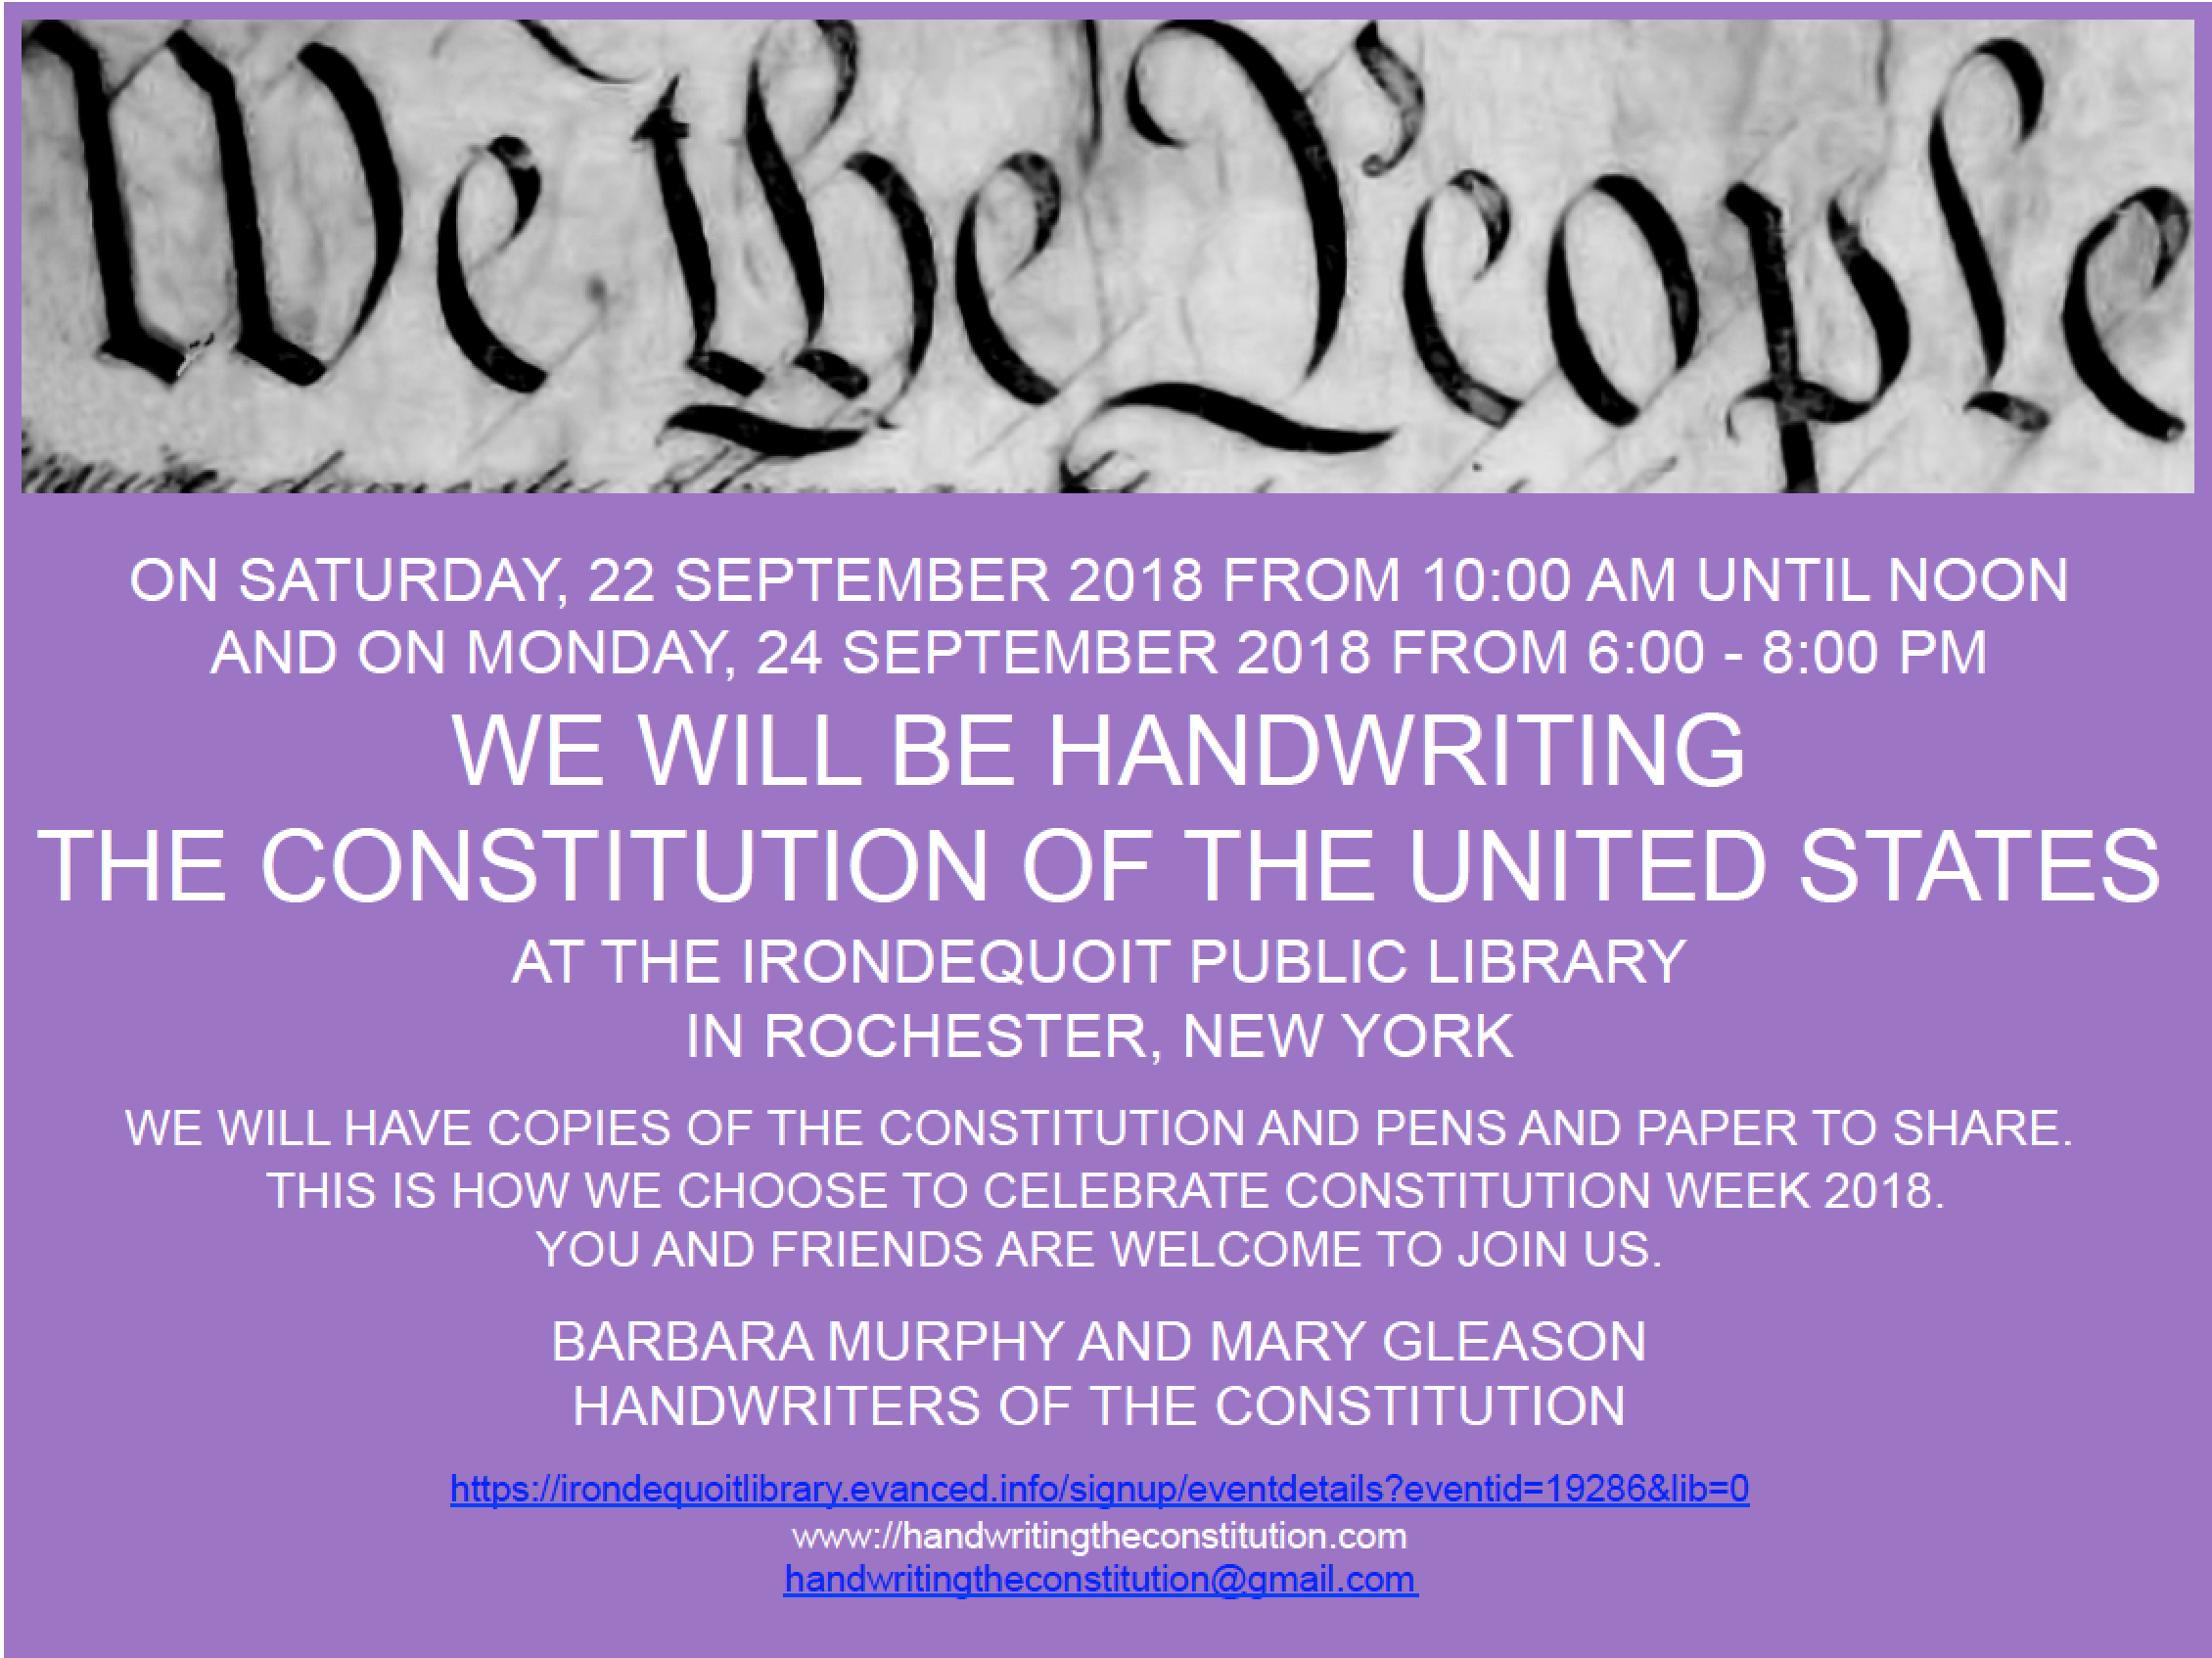 22 SEPTEMBER 2018rochester, NY - session 68collaborators barbara murphyand mary gleason